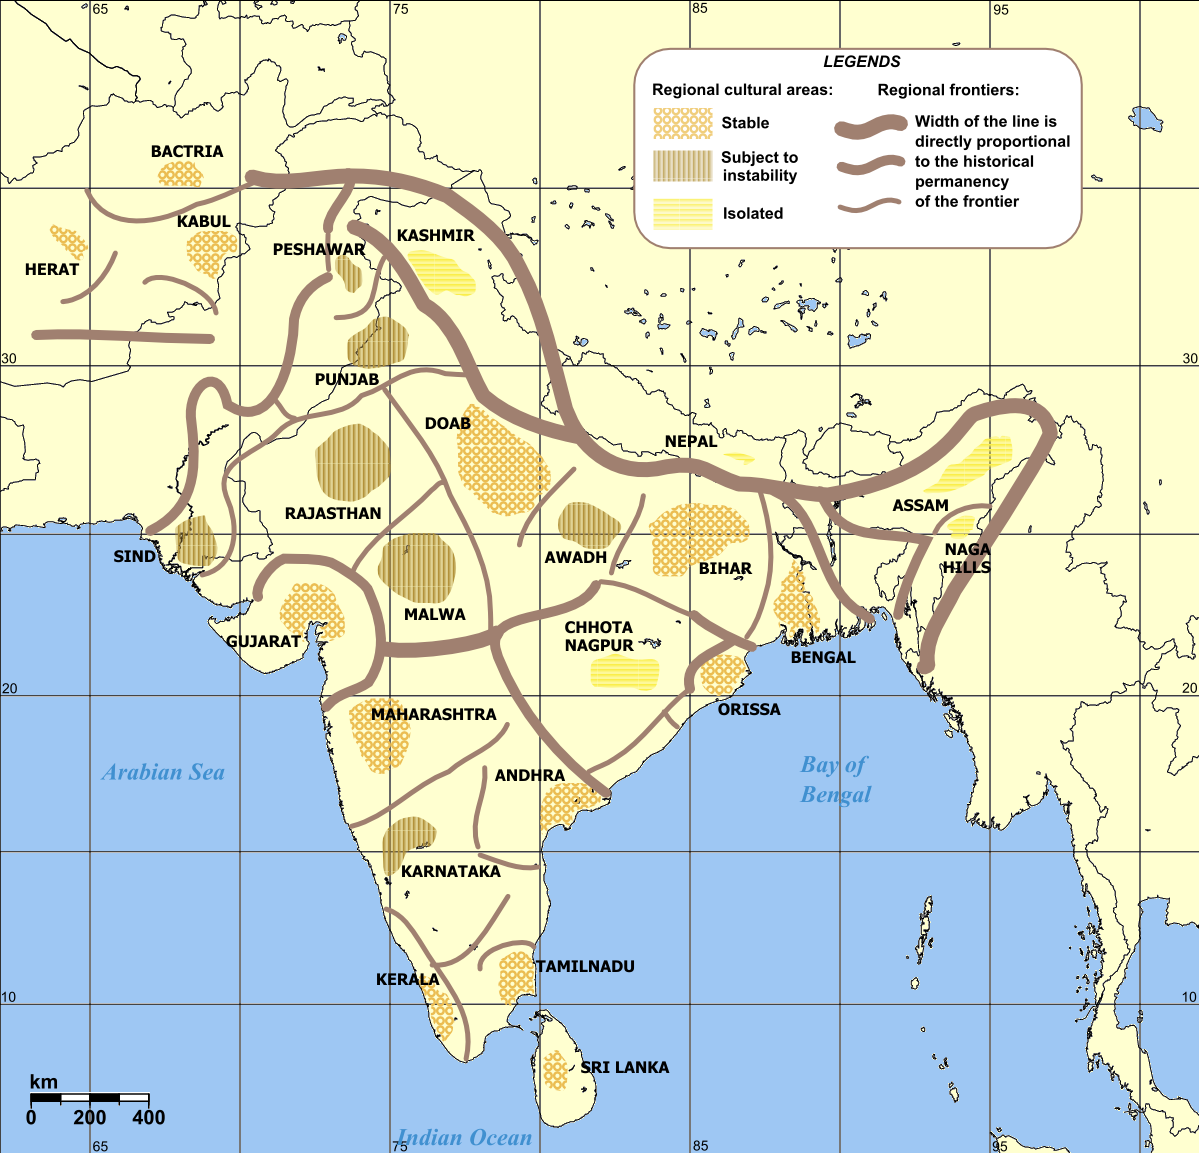 Cultural regional areas of india maps pinterest regional history of indian dynasties starting with the indus river valley and continuing through the modern indian democracy great for ap world history course and gumiabroncs Image collections